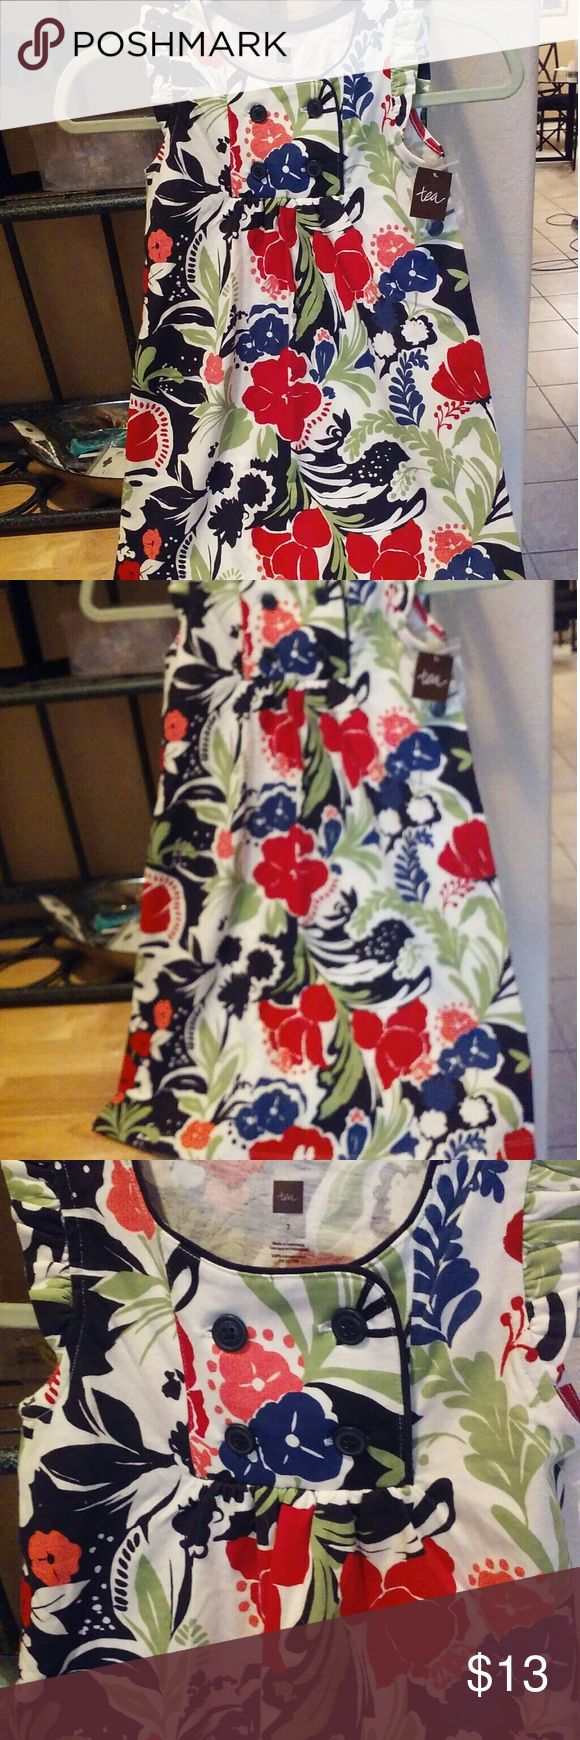 """Tea Collection Cotton Knit Cap Sleeve Dress Bold floral girl's cotton knit dress with cap sleeves and a kind of nautical design bodice with button detail. Lgth. is 26"""", arm to arm is 12 1/8"""". NWT- store tag, no price tag- online purchase Tea Collection Dresses Casual"""